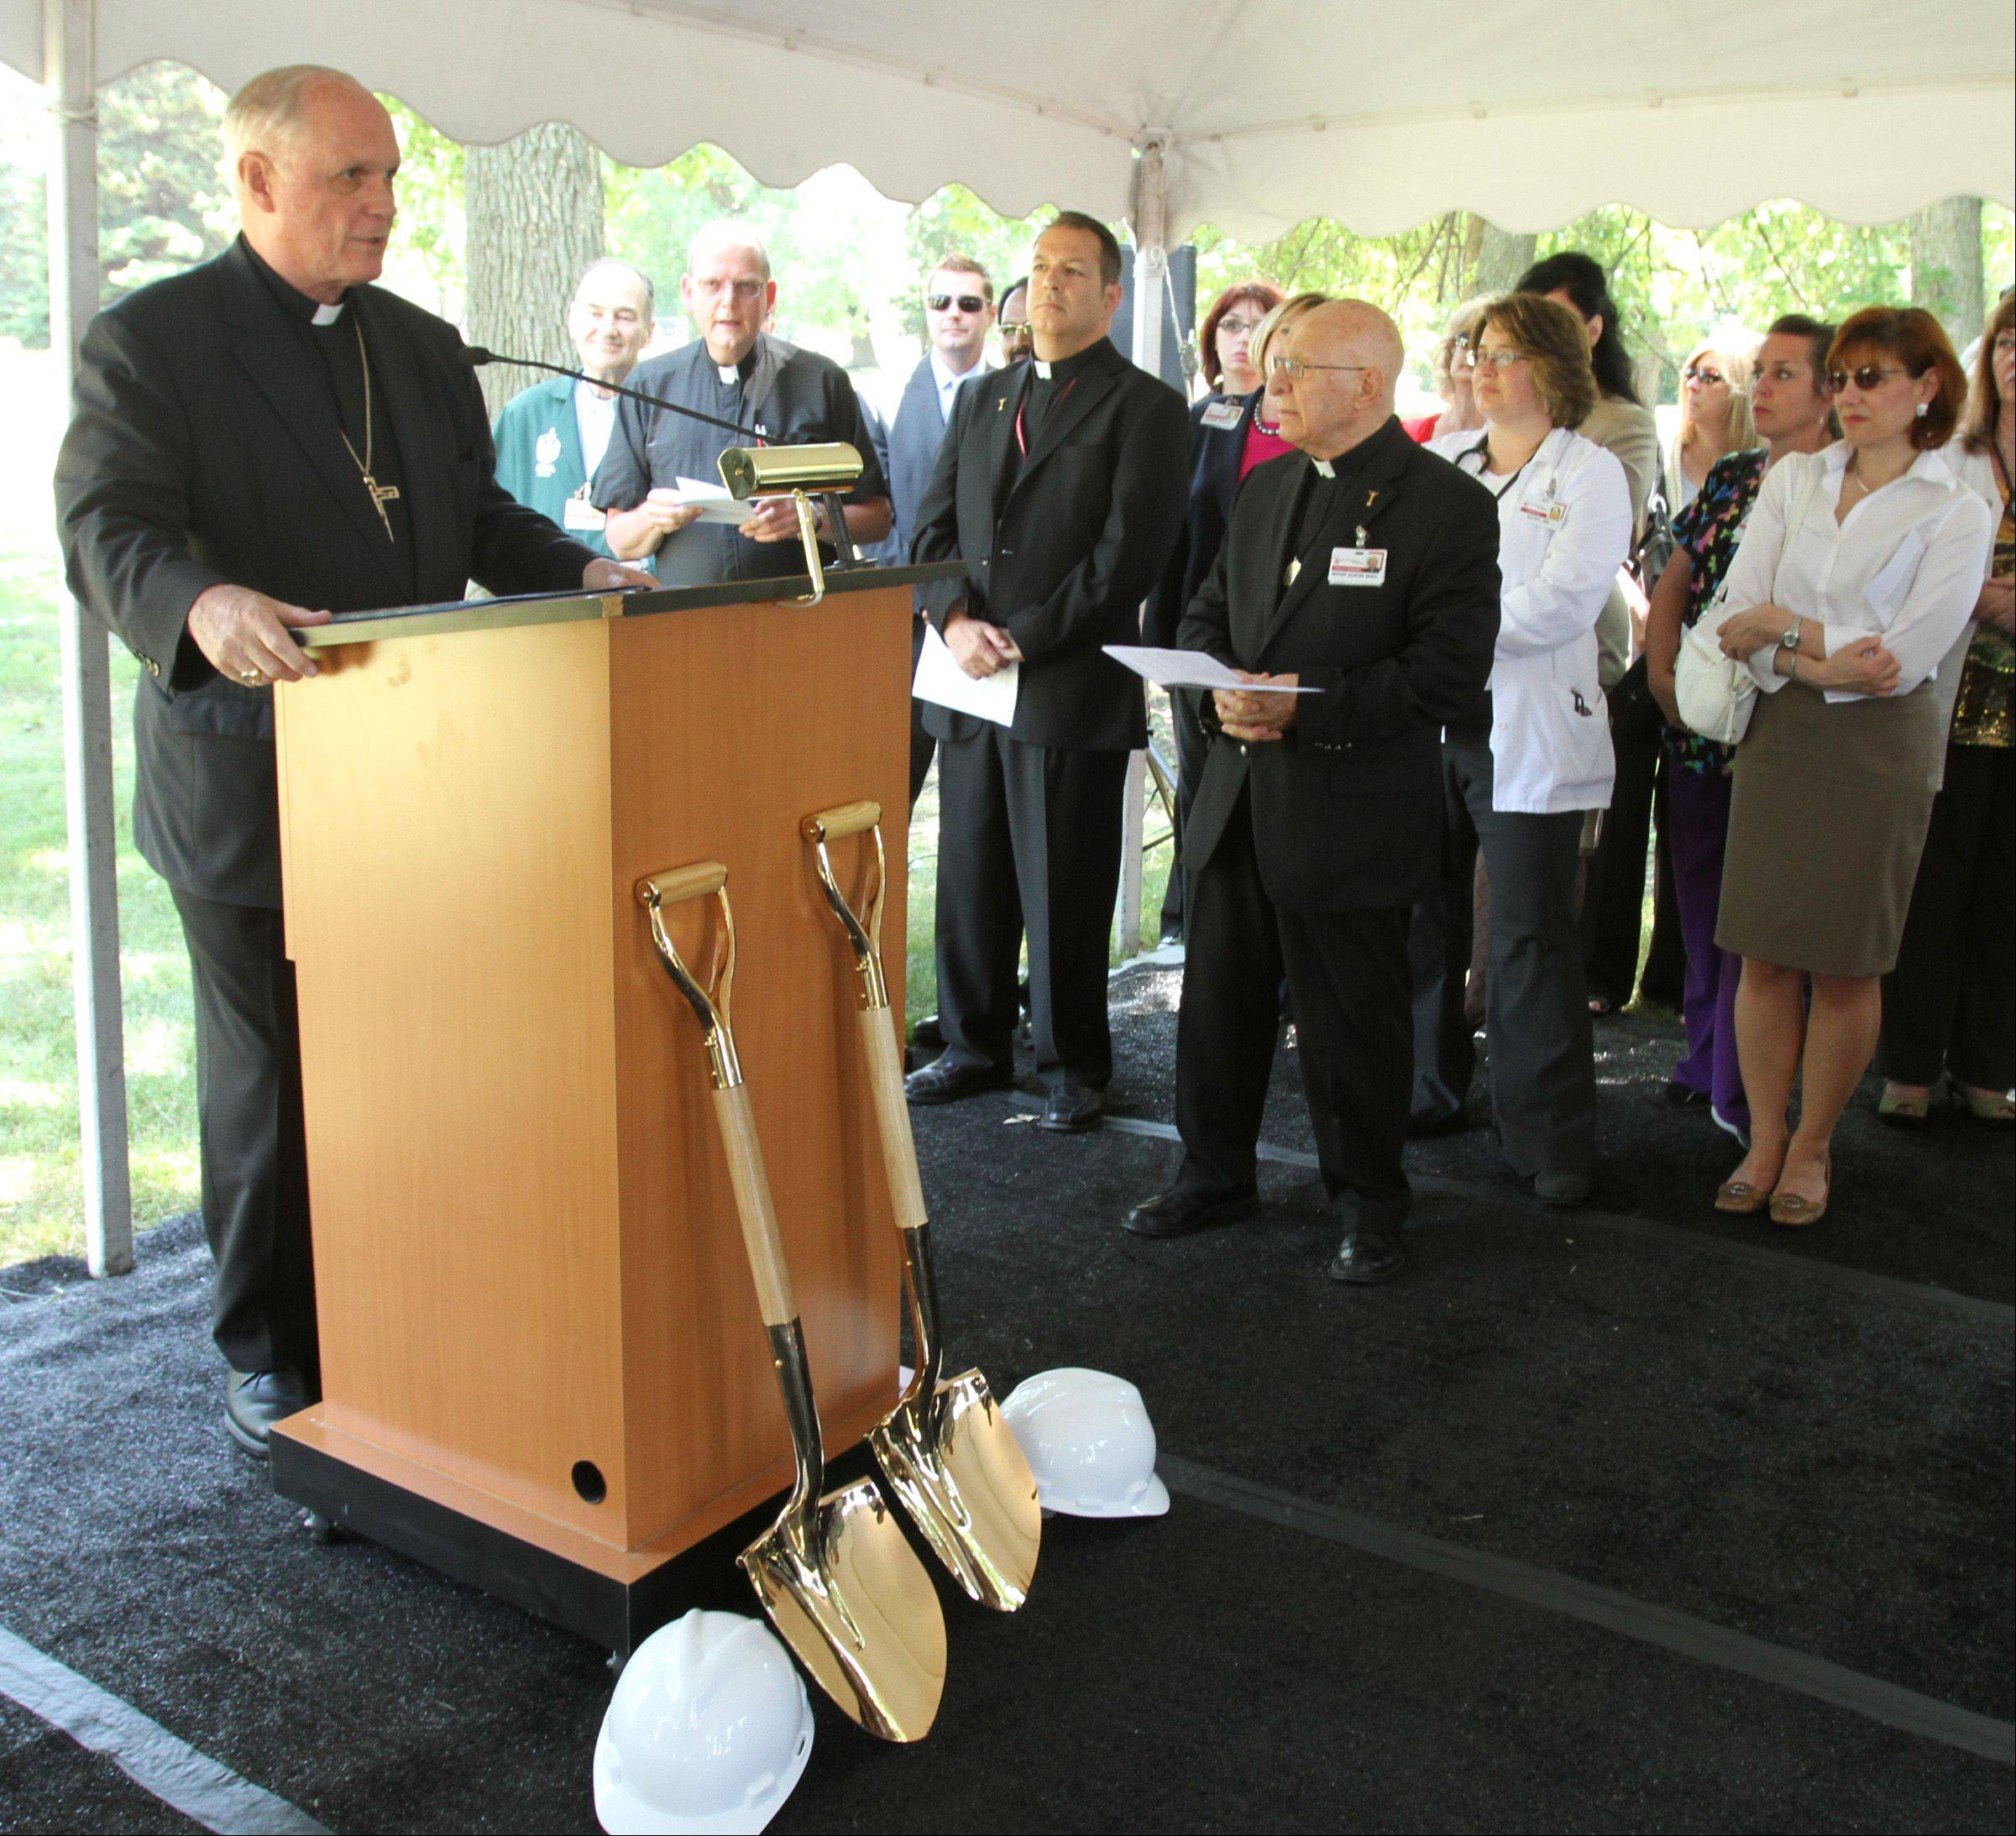 Most Reverend George Rassas Auxiliary Bishop of Chicago speaks at the Alexian Brothers Health System groundbreaking for a $7.5 million free-standing hospice residence in Elk Grove Village on Tuesday.